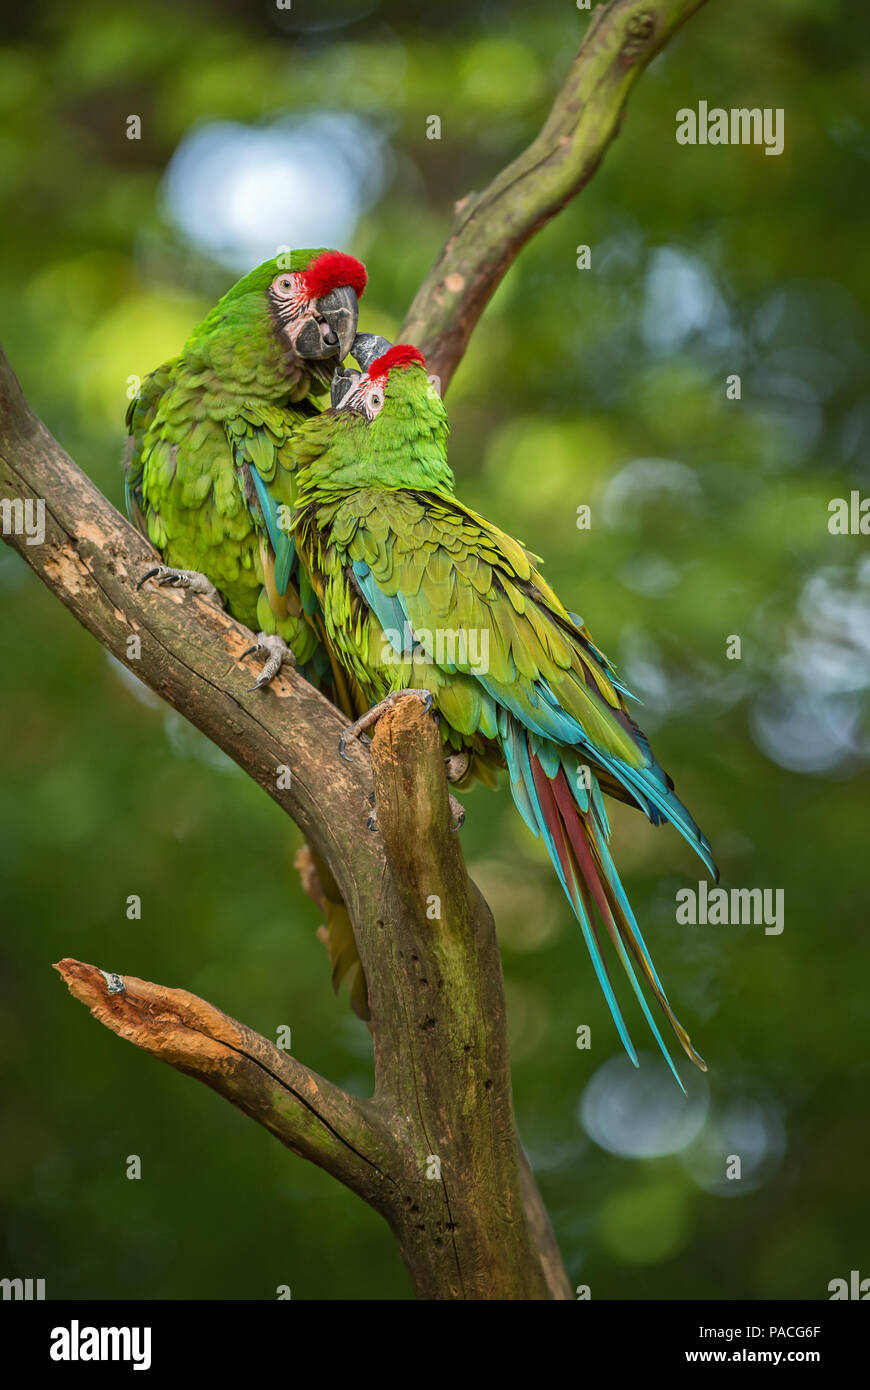 Military Macaw- Ara militaris, large beautiful green parrot from South America forests, Argentina. - Stock Image